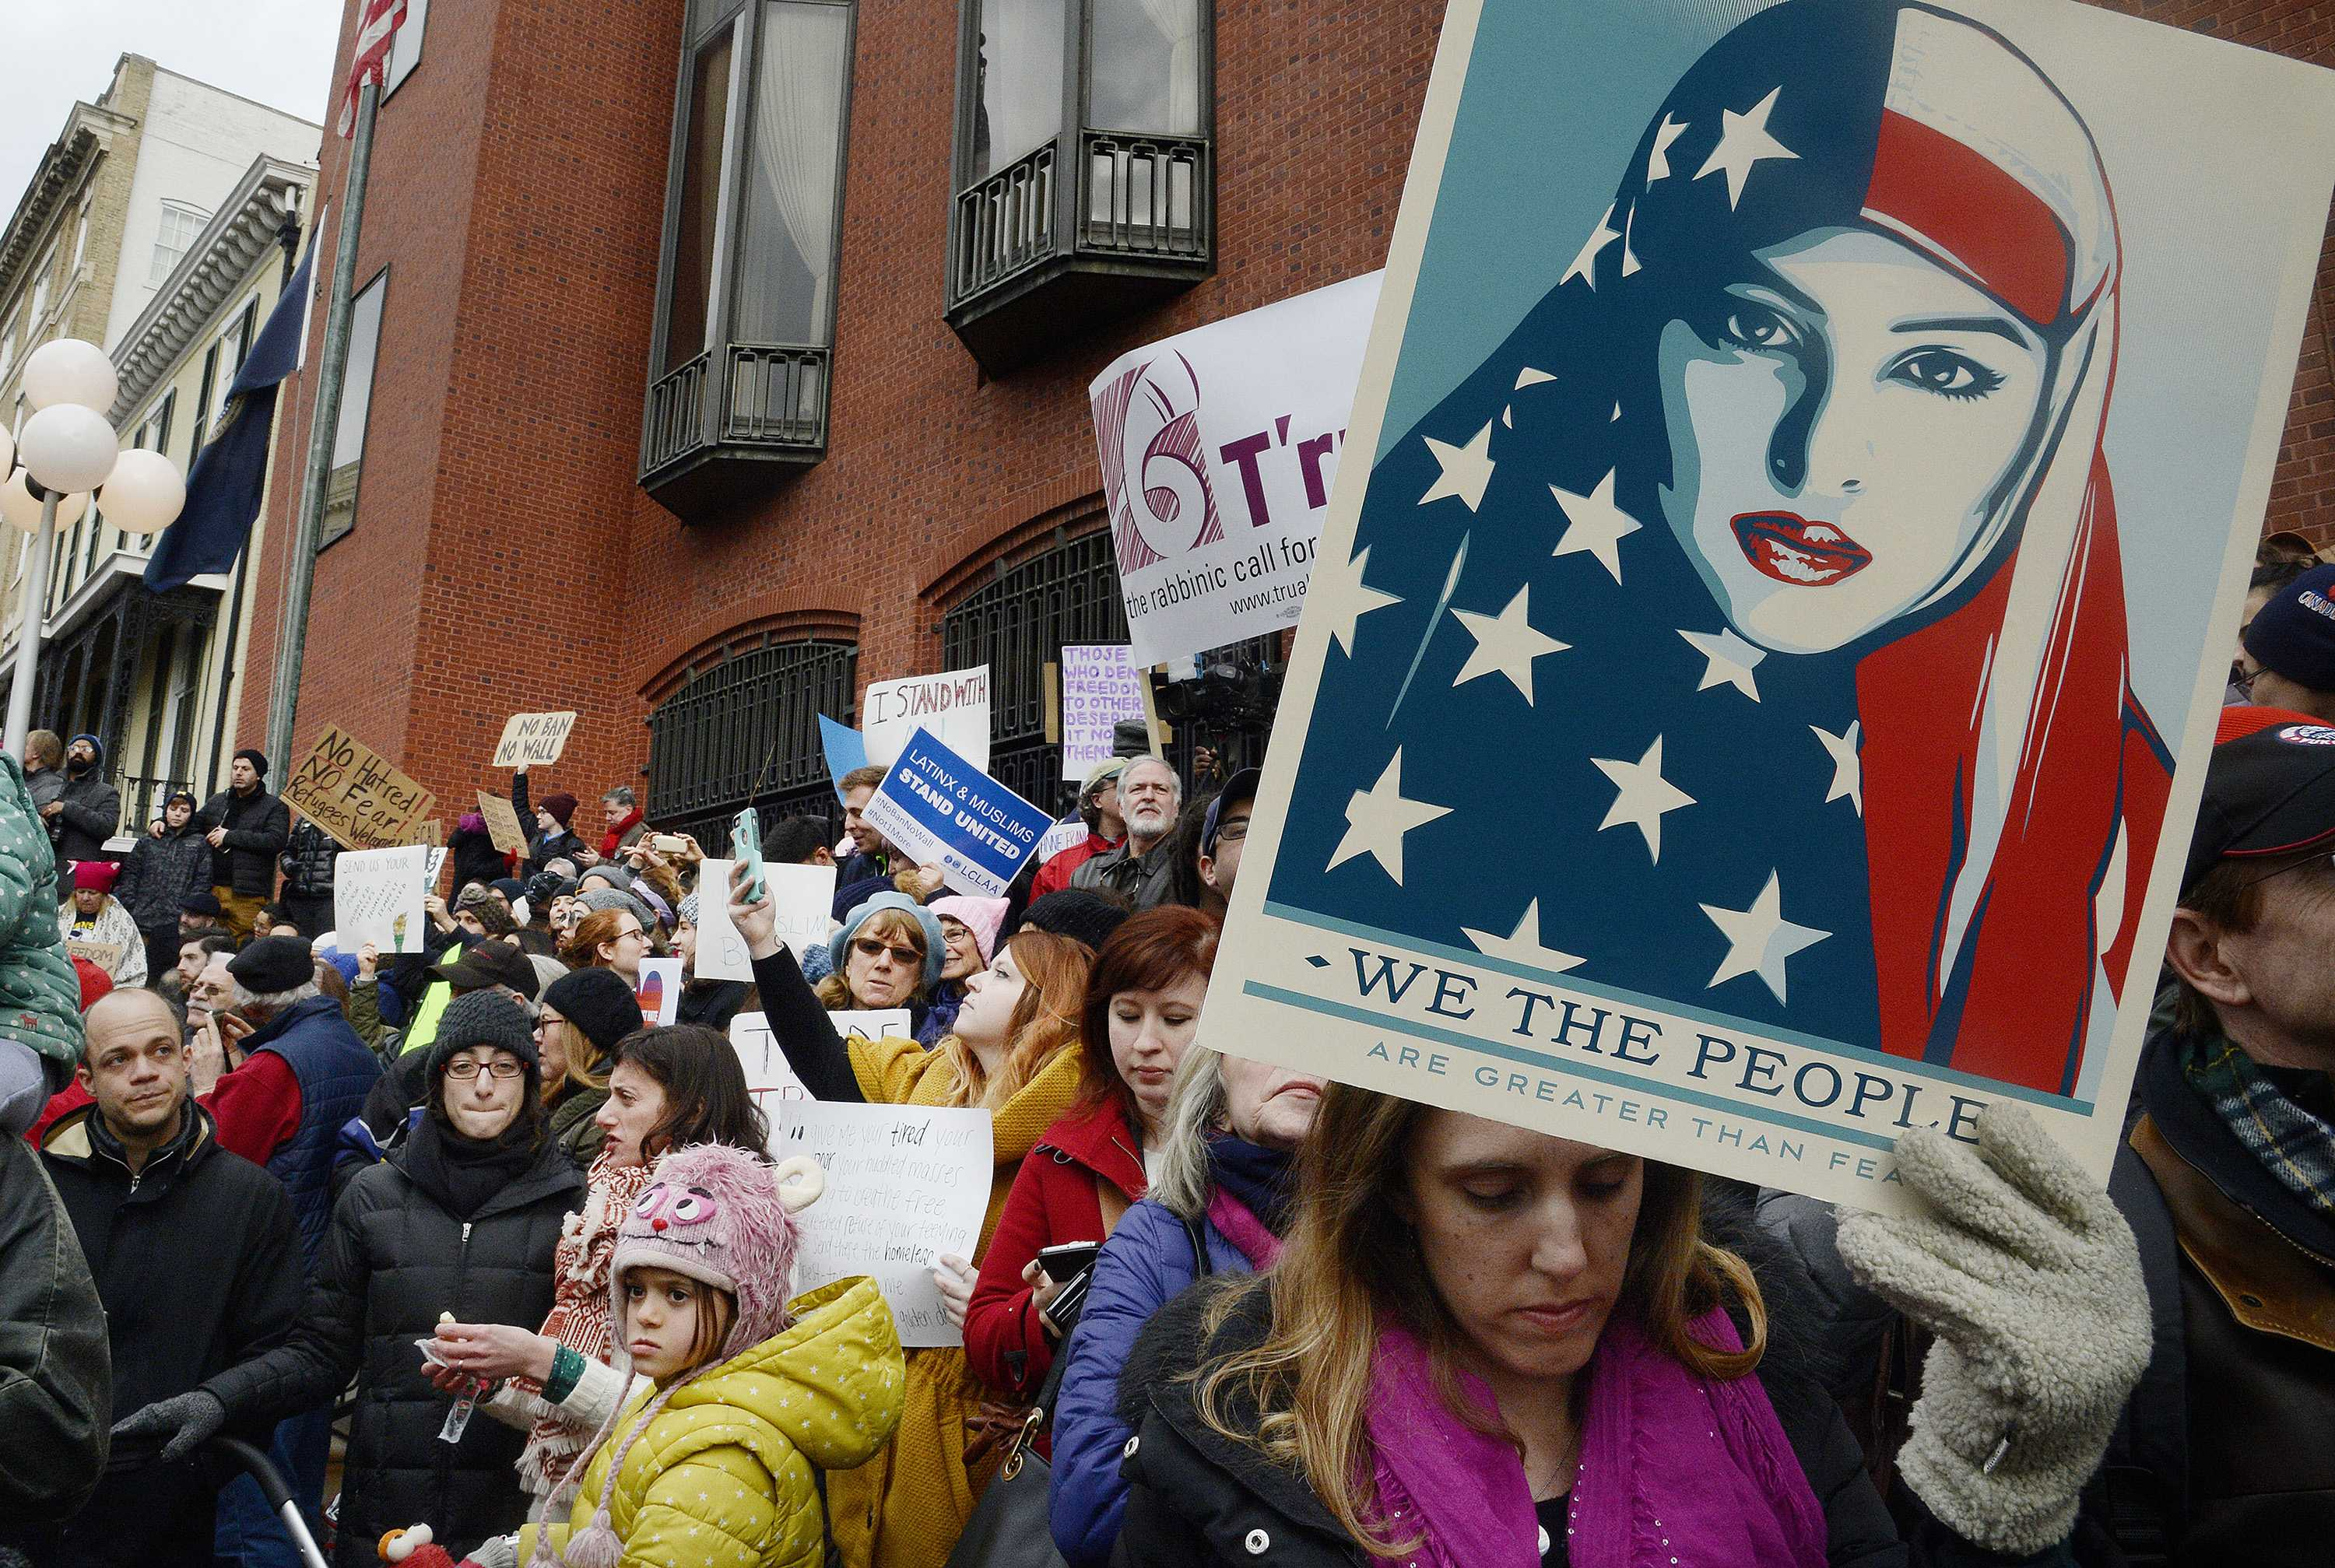 Thousands of Americans have protested against Trump's executive order. A Seattle District Attorney ruled blocked the order declaring it unconstitutional.